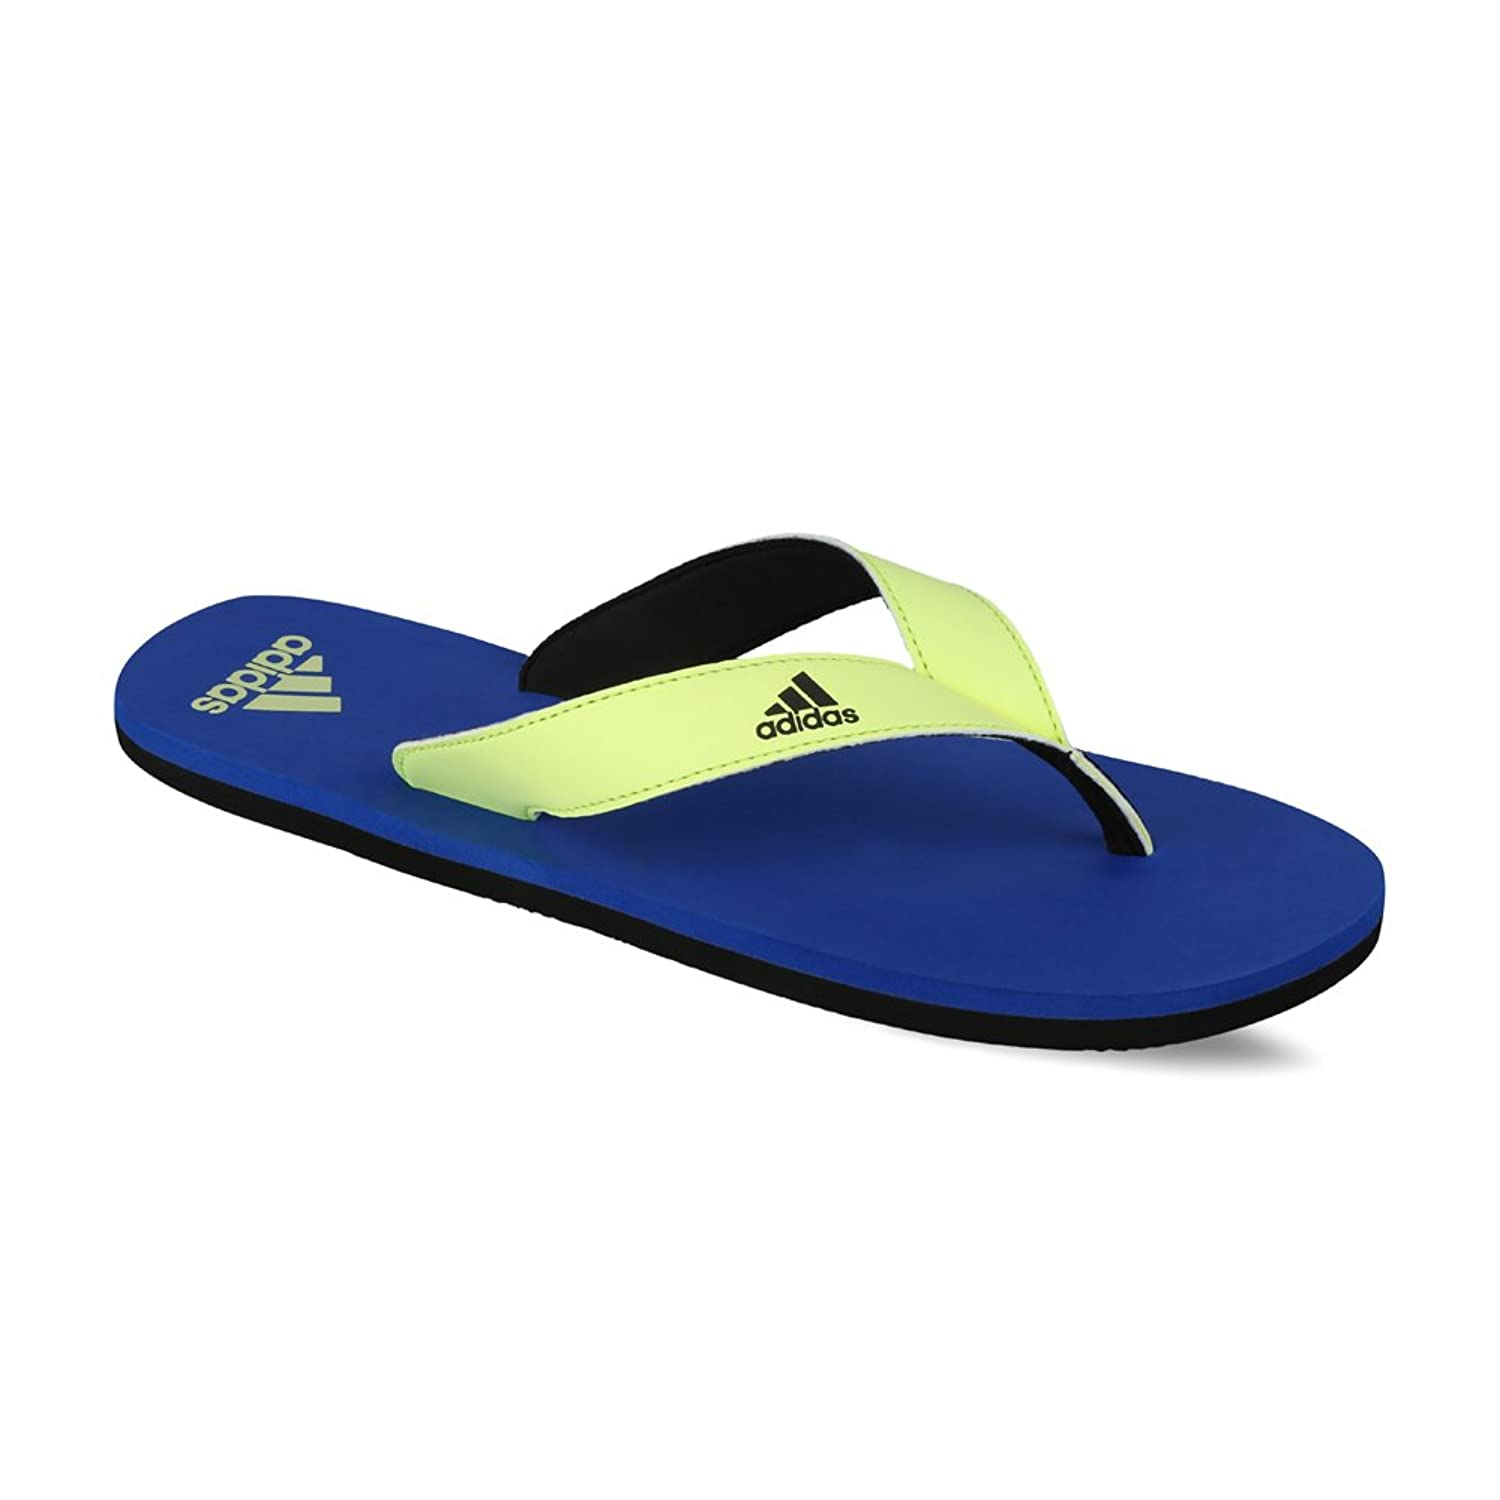 adidas sandals for men online